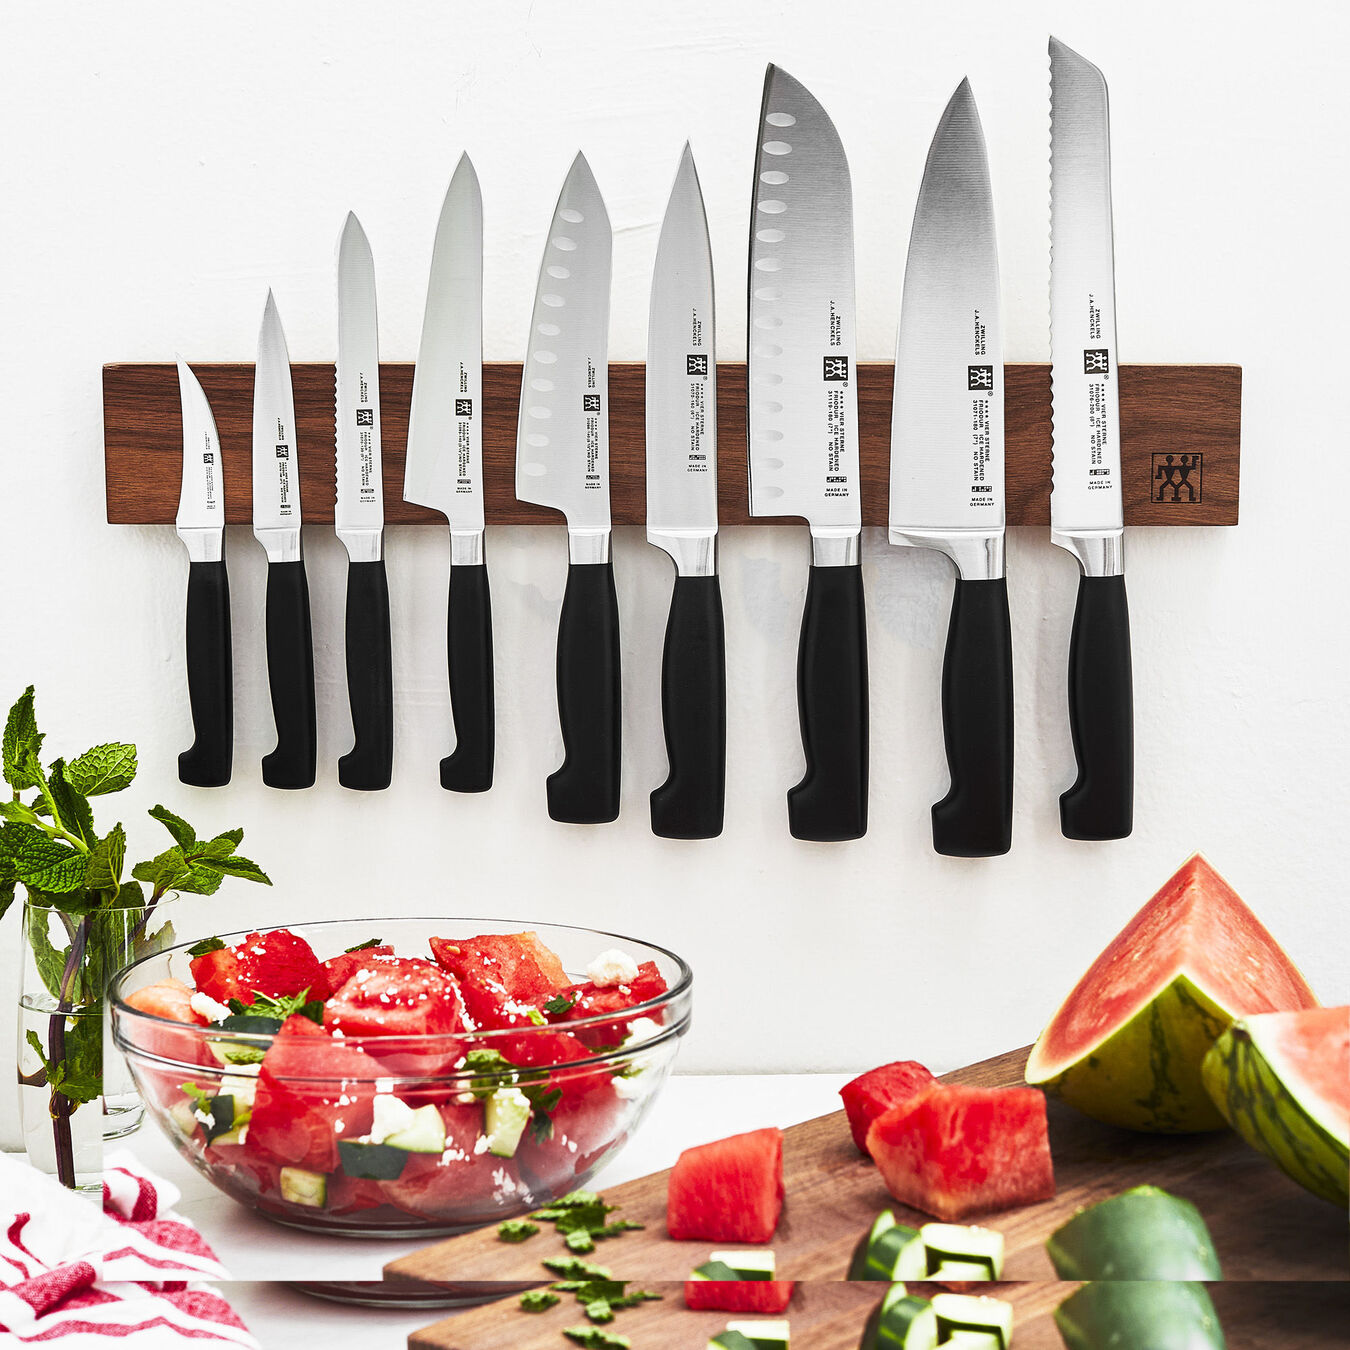 8-inch, Chef's knife,,large 6